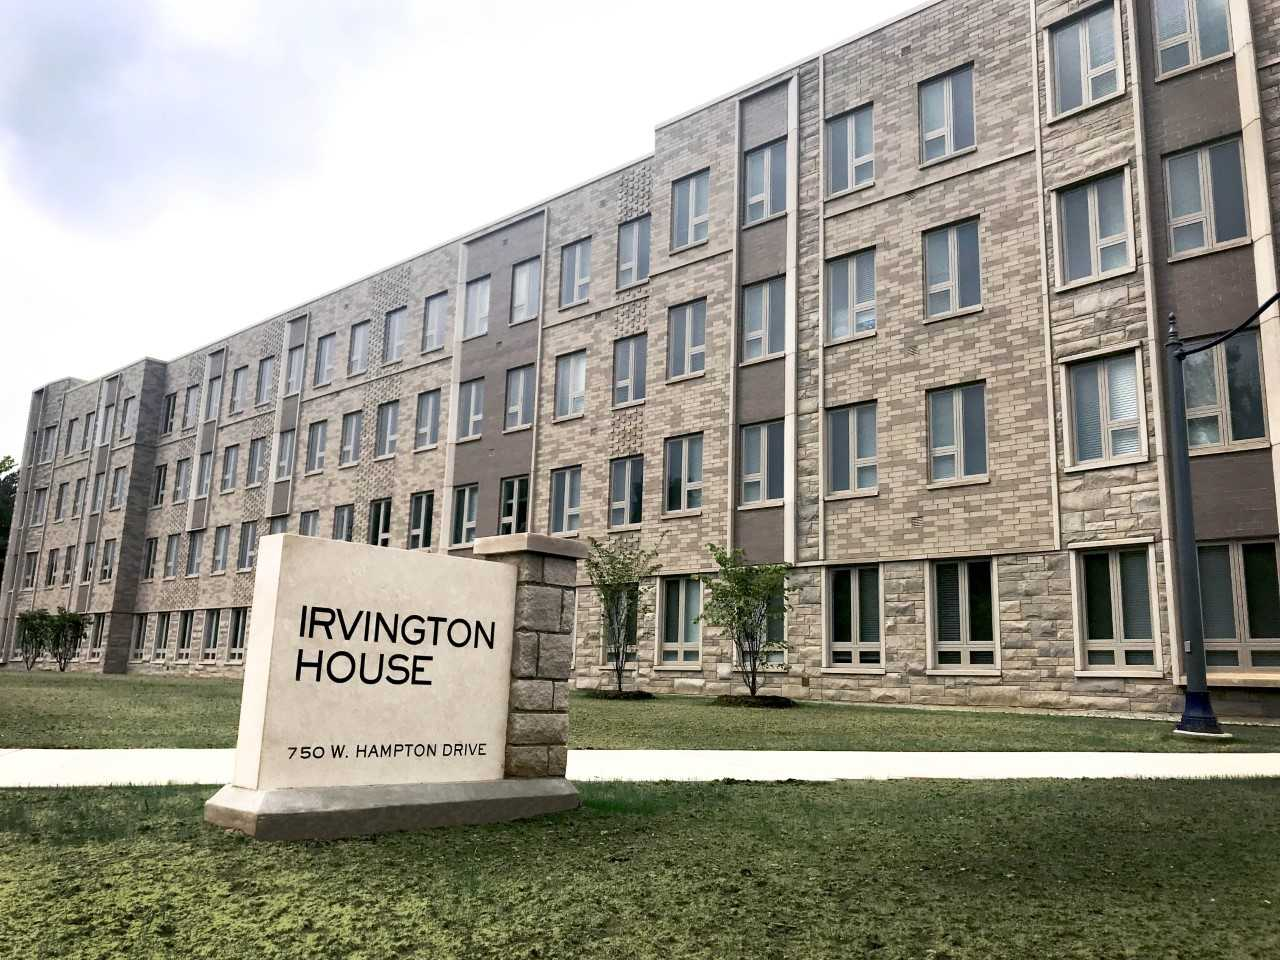 Irvington House Becomes Butler University S Newest Residential Facility